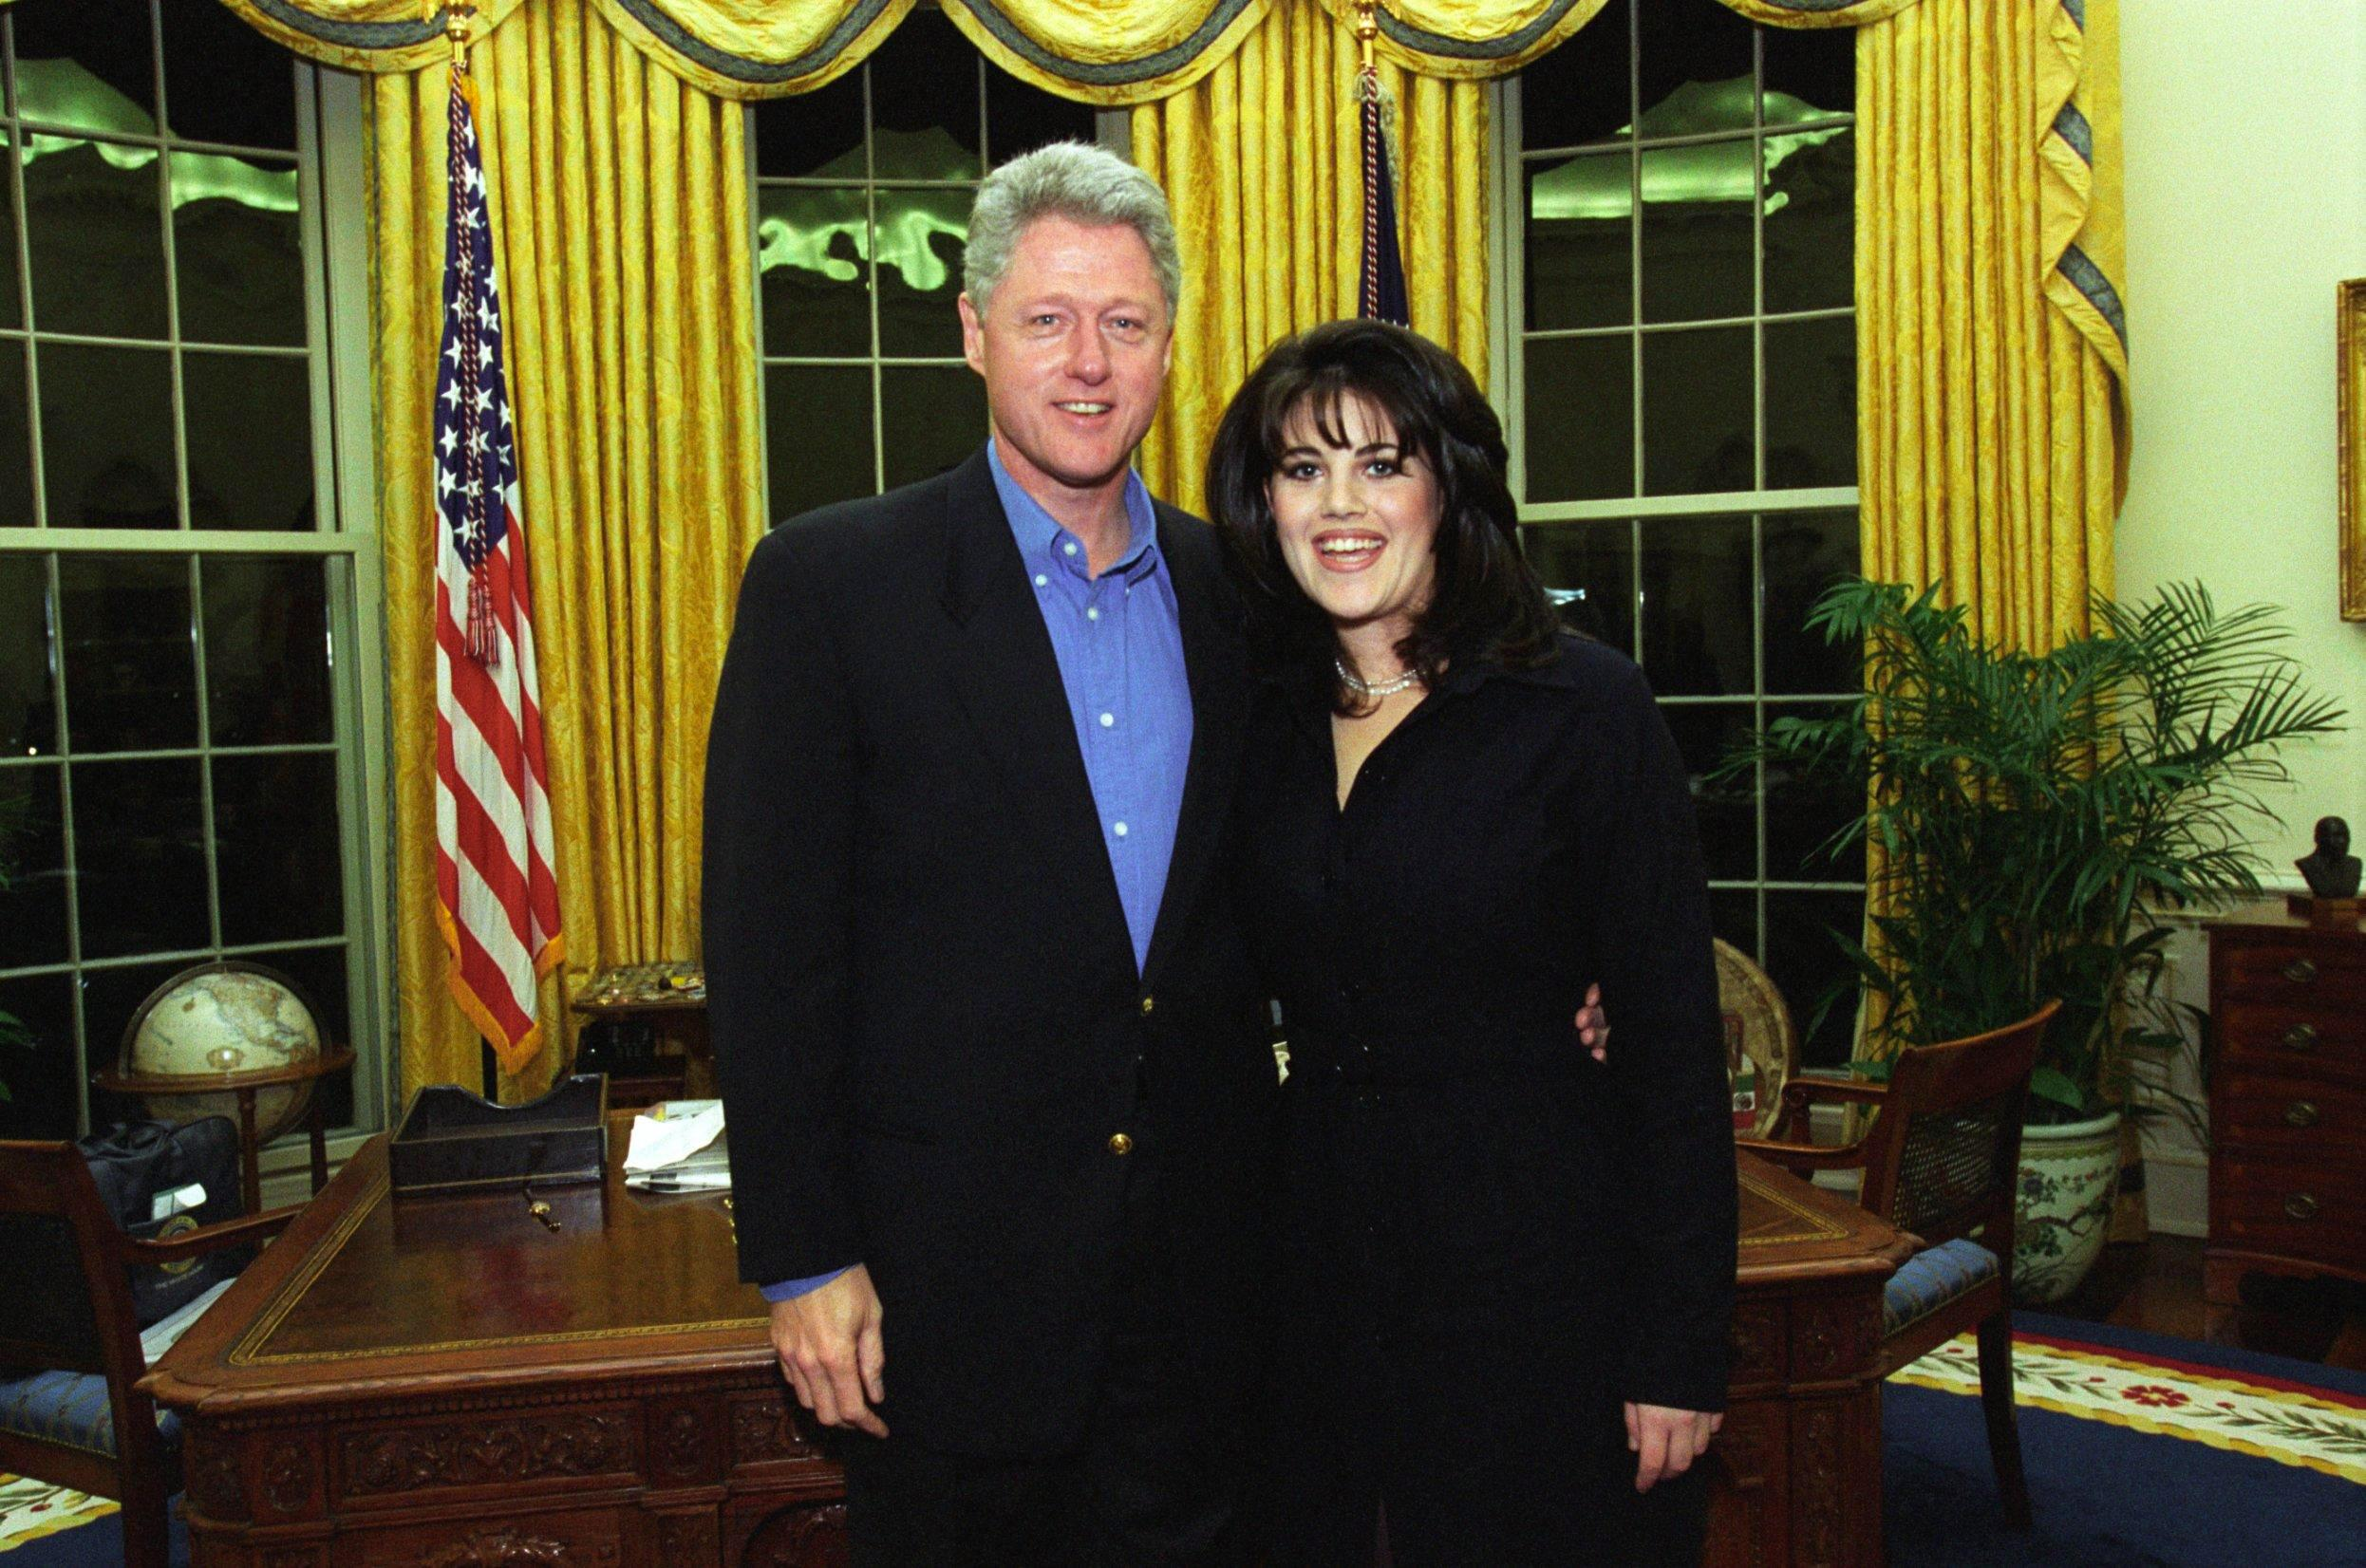 Bill_Clinton_and_Monica_Lewinsky_on_February_28,_1997_A3e06420664168d9466c84c3e31ccc2f